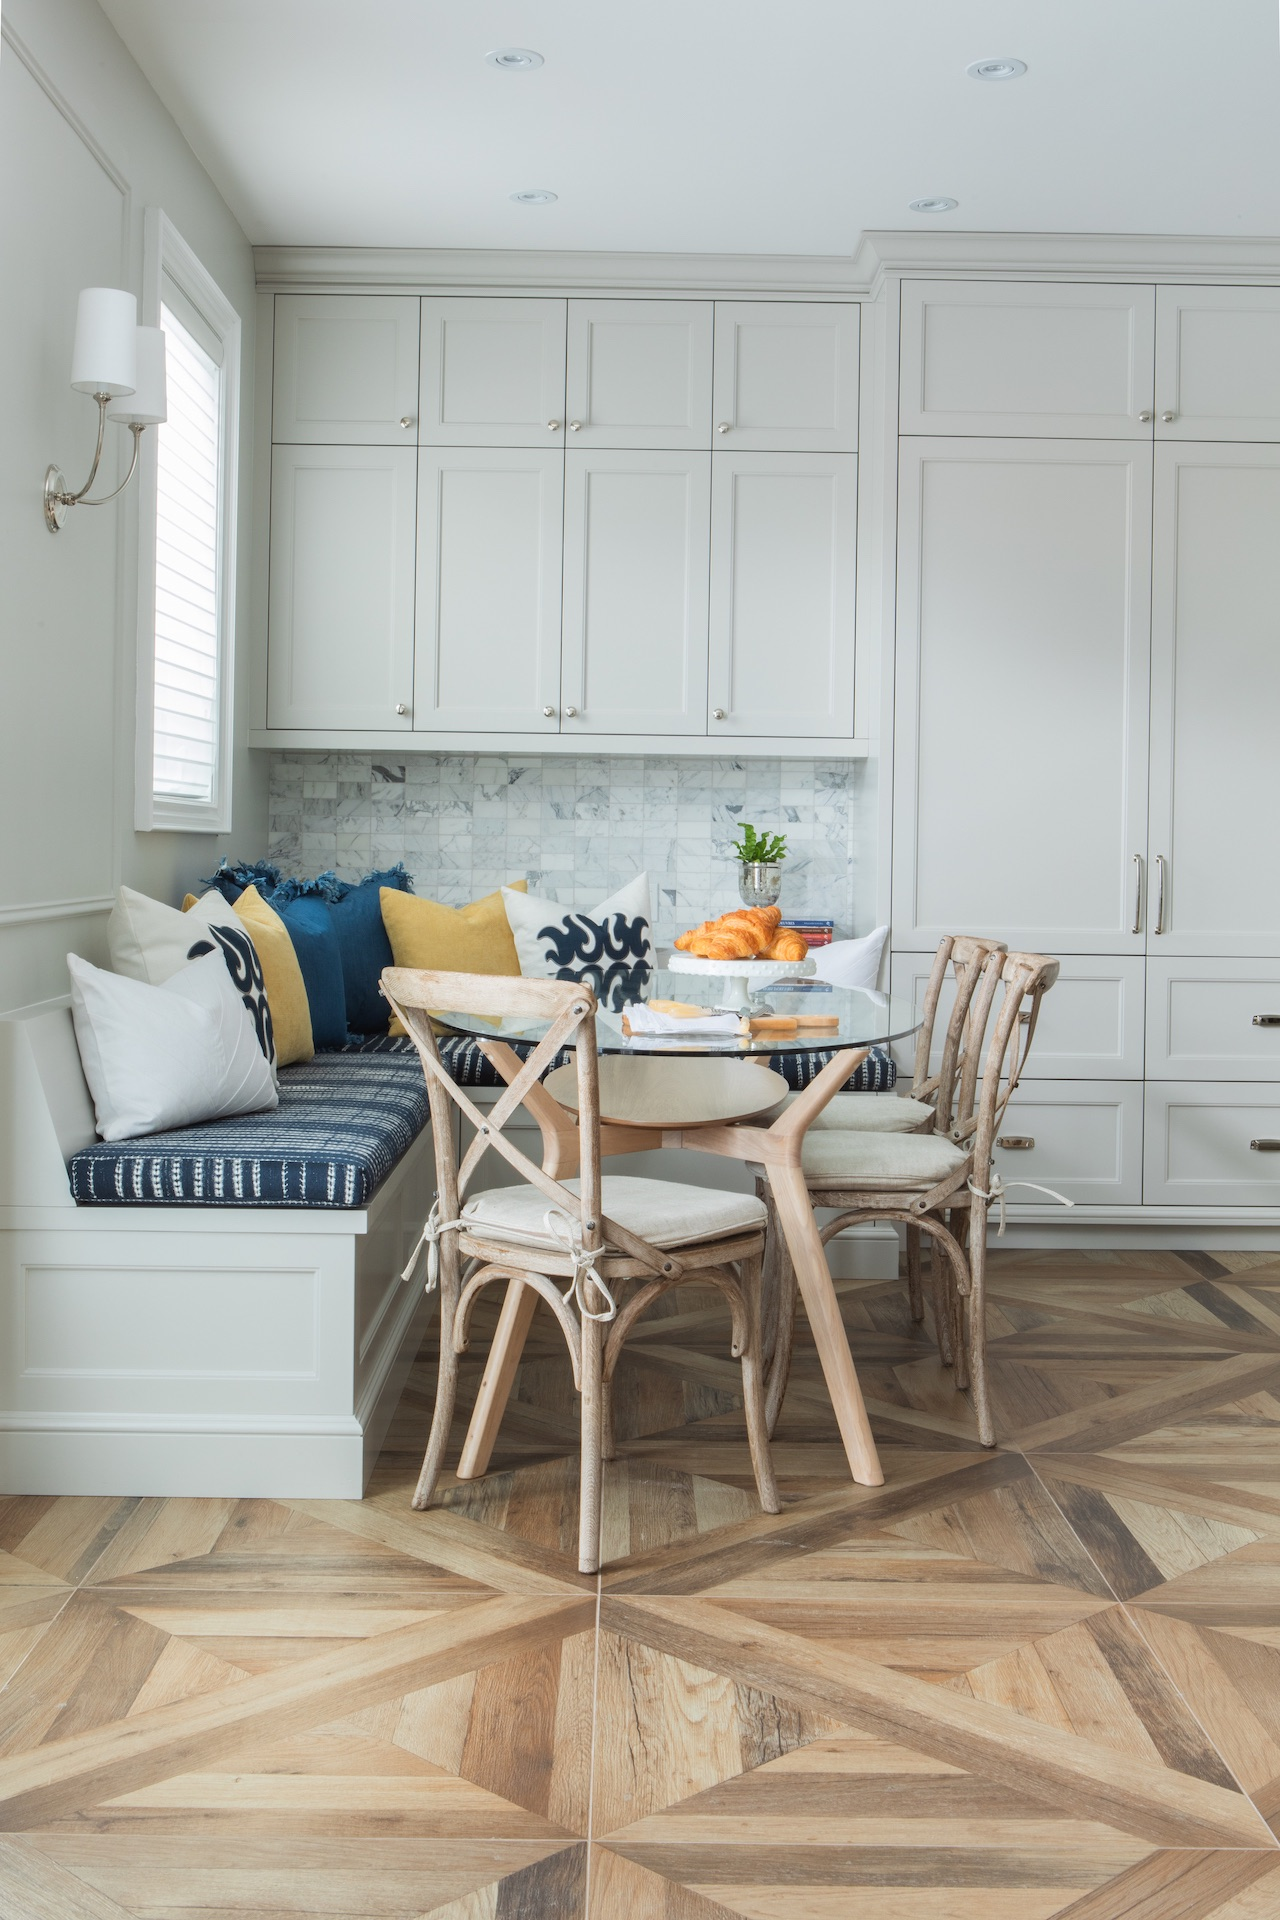 glass and wood kitchen table with wood chairs